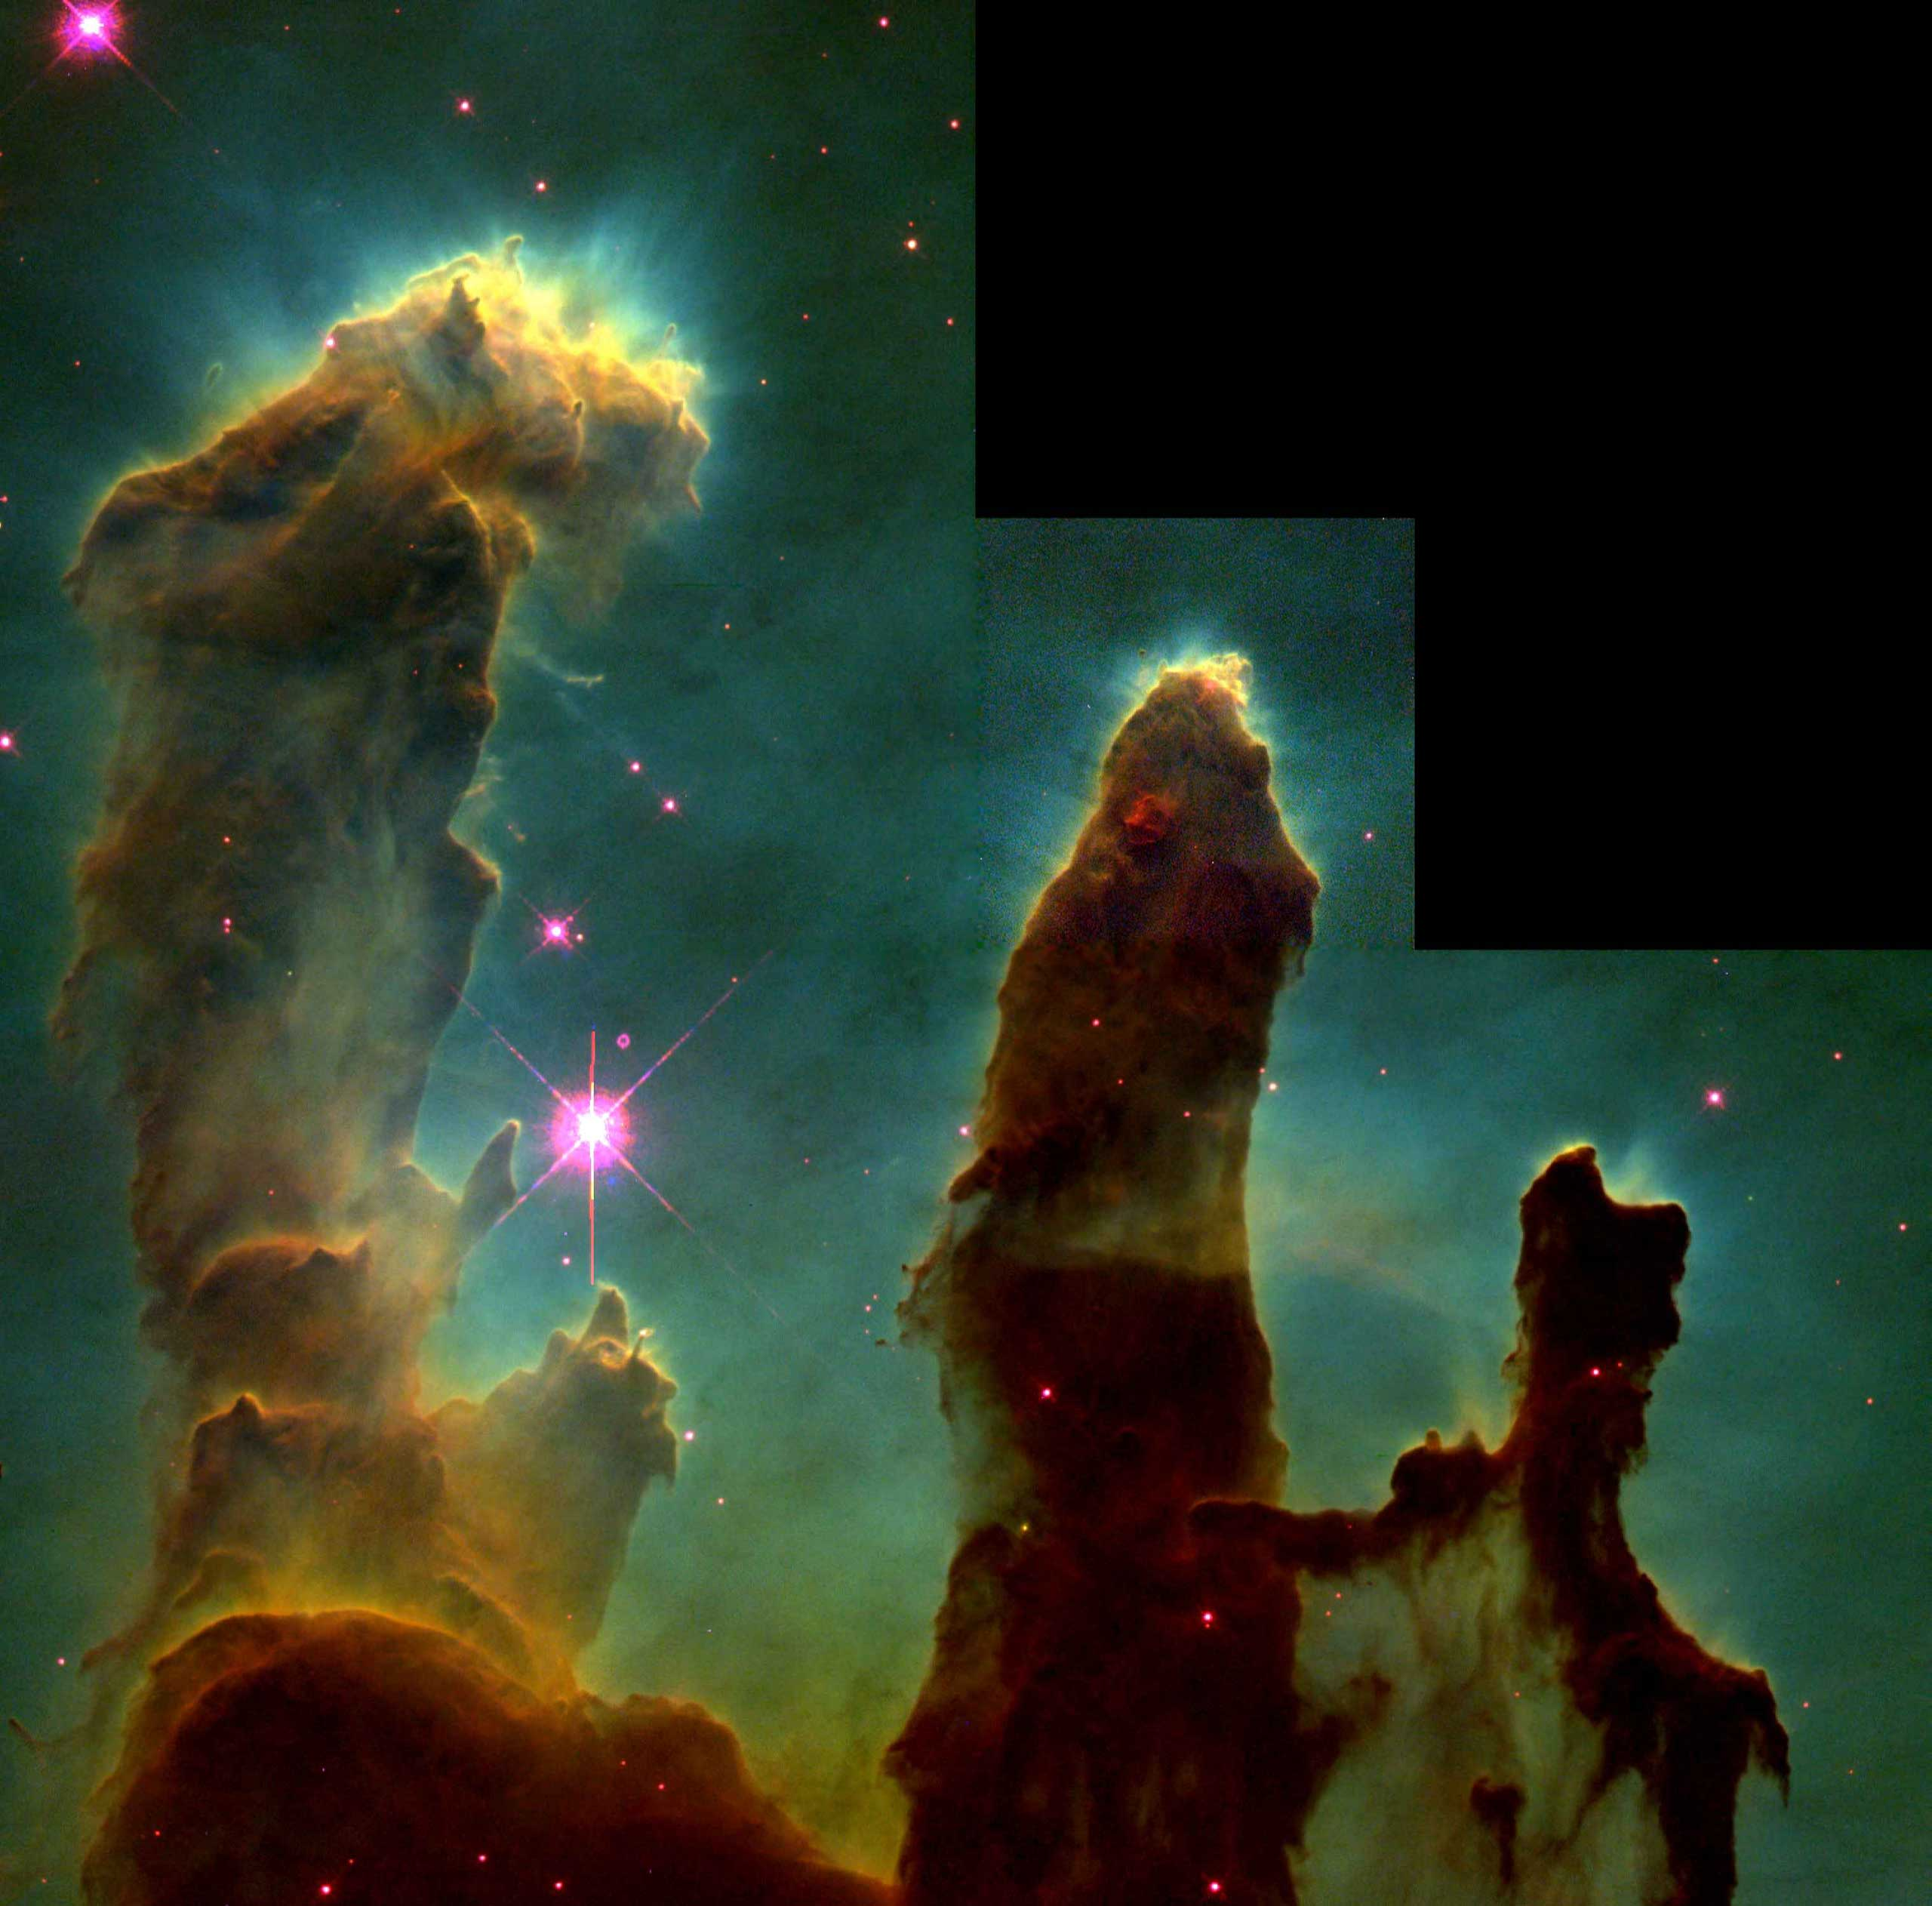 The original image of the  Pillars of Creation  taken by the Hubble Telescope in 1995.